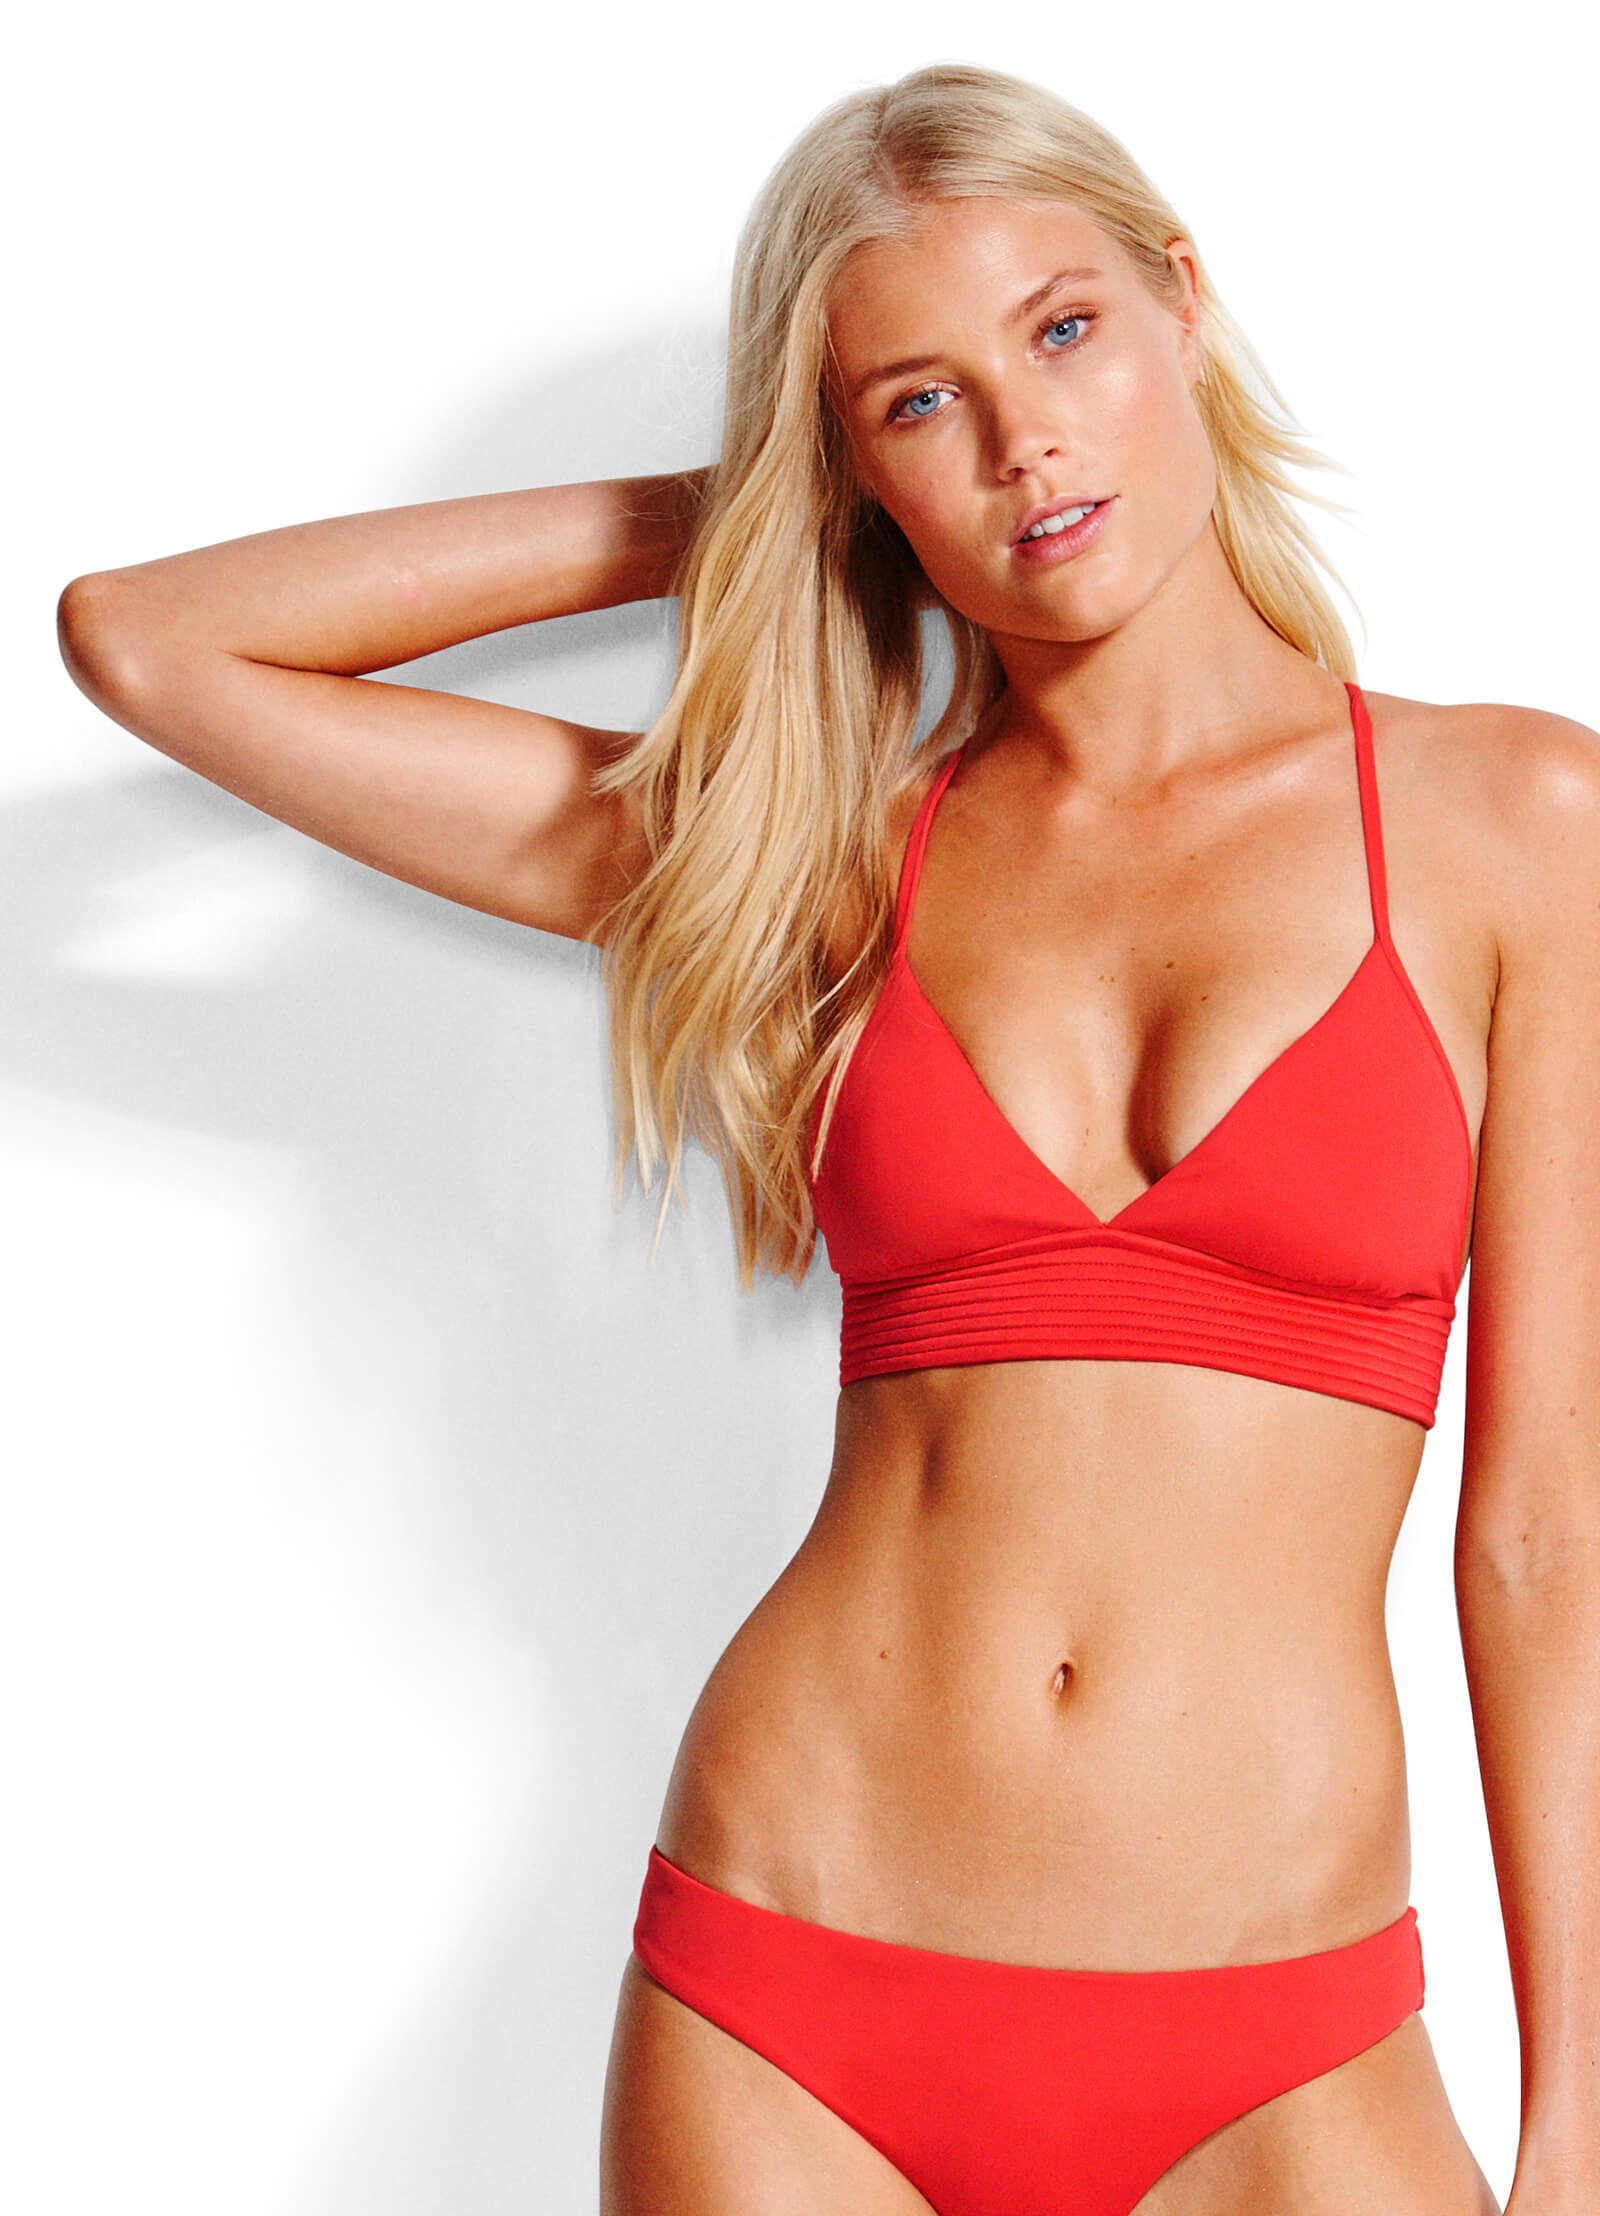 Seafolly Collection - Bikinis & Beachwear | Seafolly Swimwear